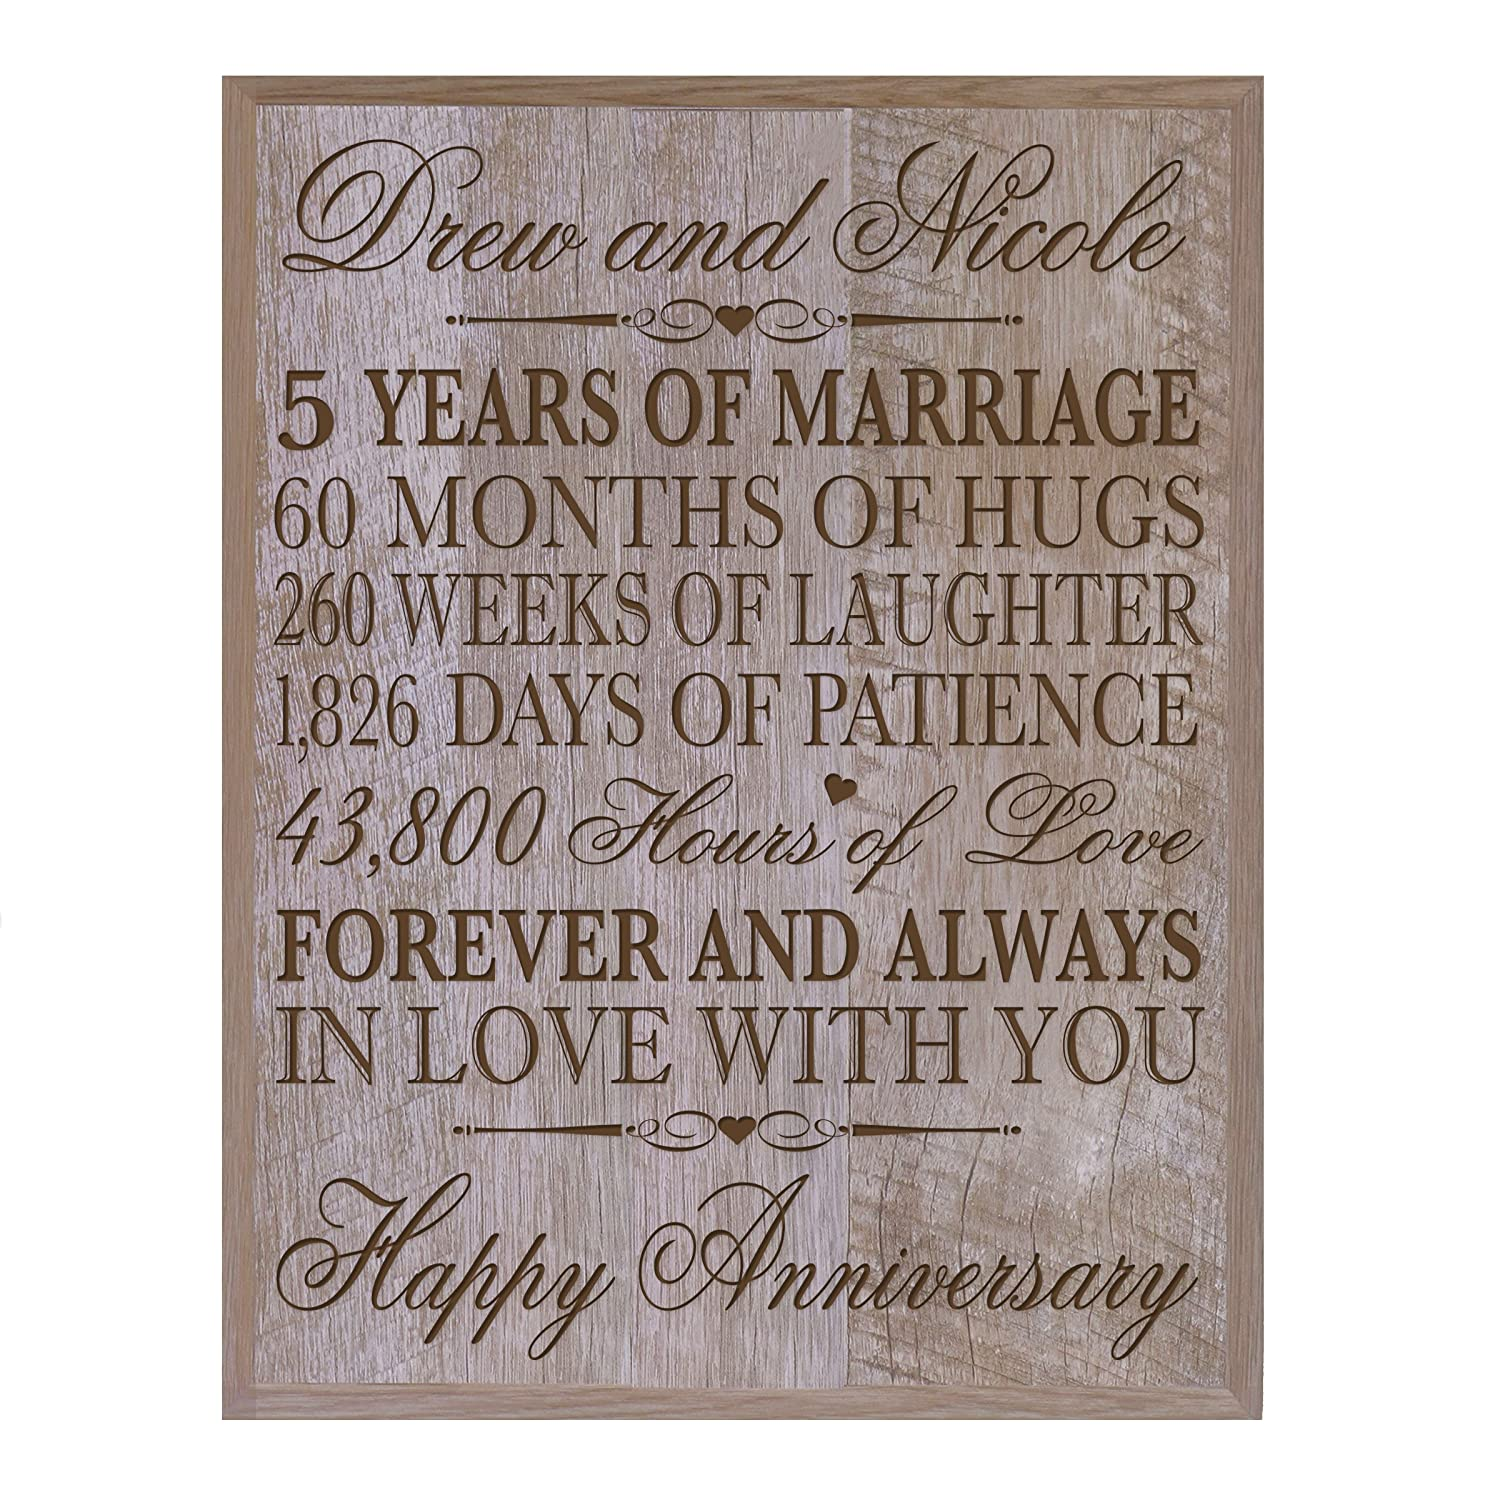 Personalized 5th Wedding Anniversary Wall Plaque Gifts for Couple, Custom Made 5th Anniversary Gifts for Her,5th Wedding Anniversary Gifts for Him Plaque By LifeSong Milestones (Walnut)